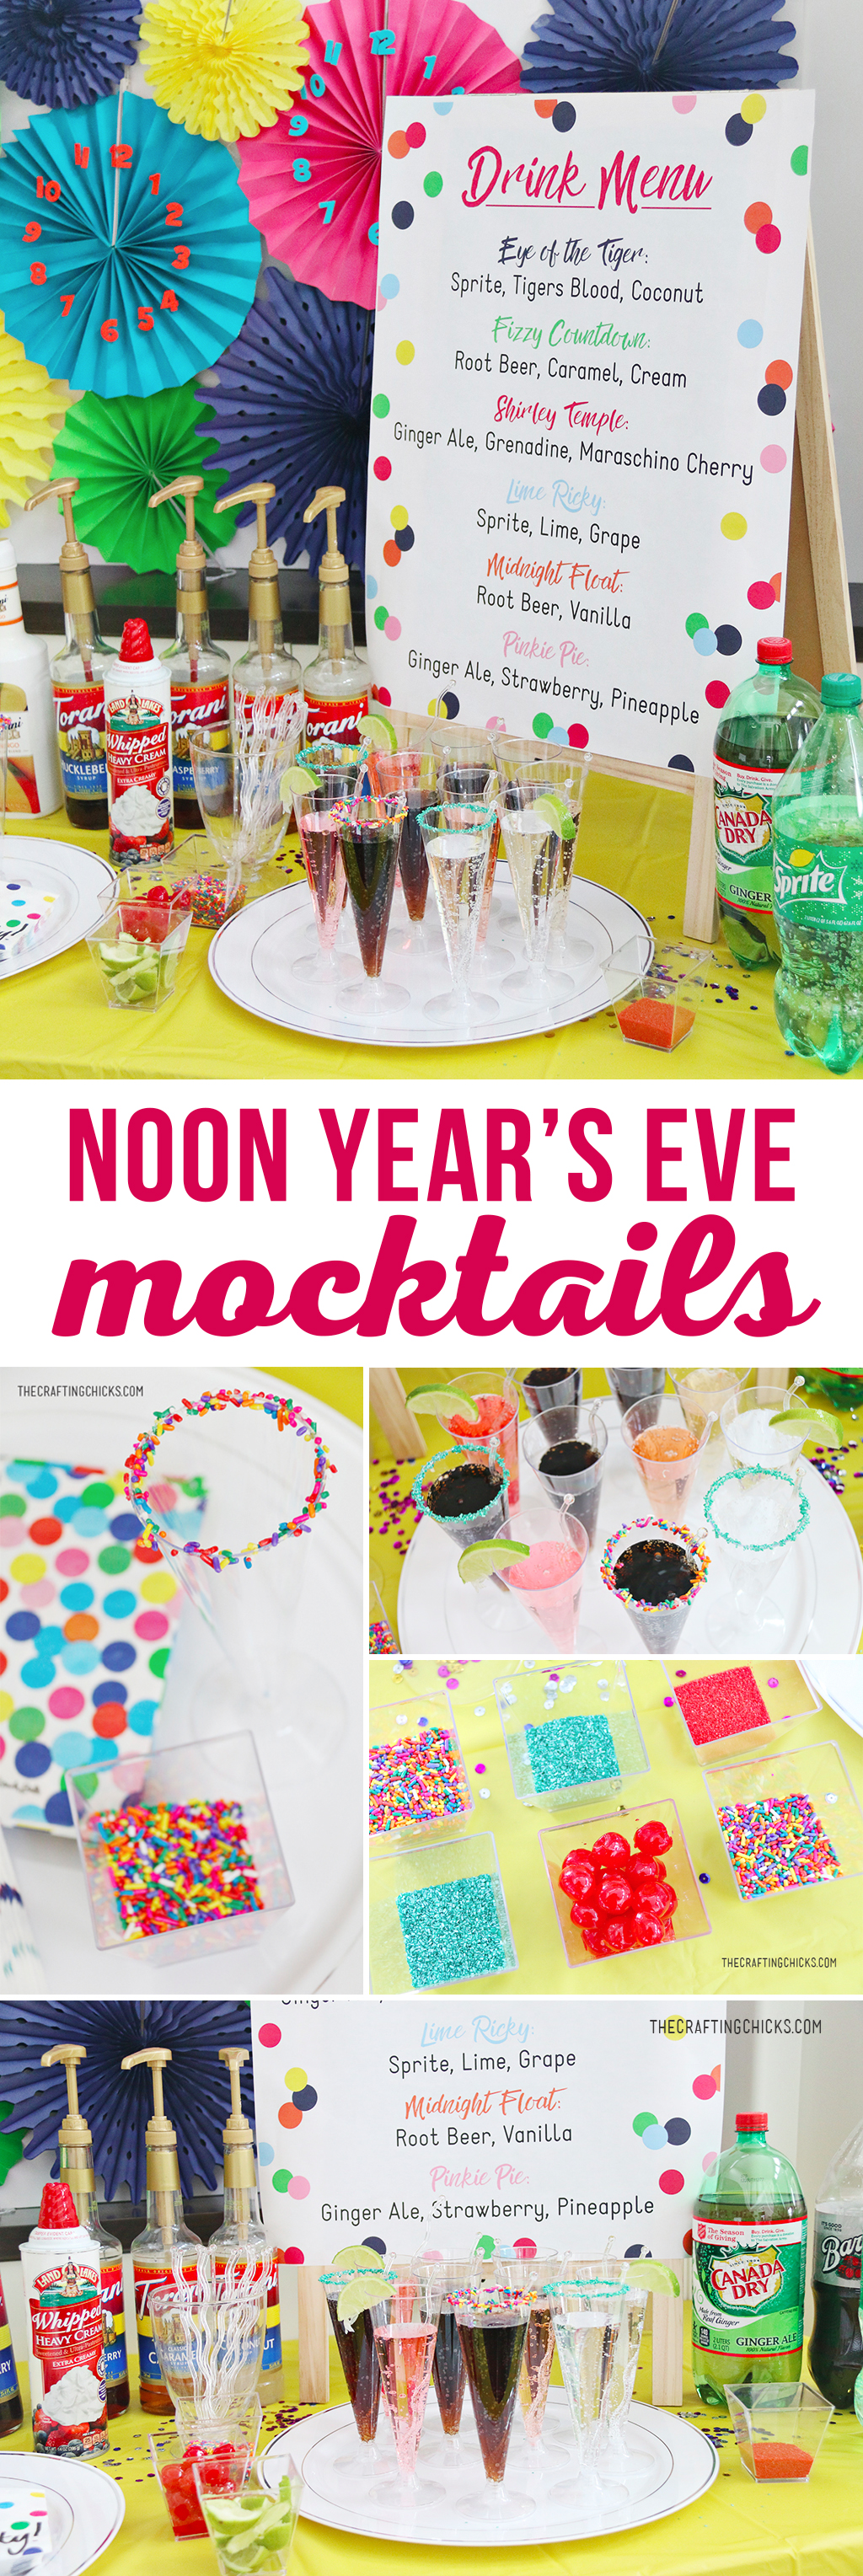 Mocktails for Kids Noon Year's Eve Party | Mocktails for Kids' is a great way to ring in the New Year or any party. We added this fun Printable Kids' Mocktail Menu to our Noon Year's Eve Party that we threw our kids and it was a hit.